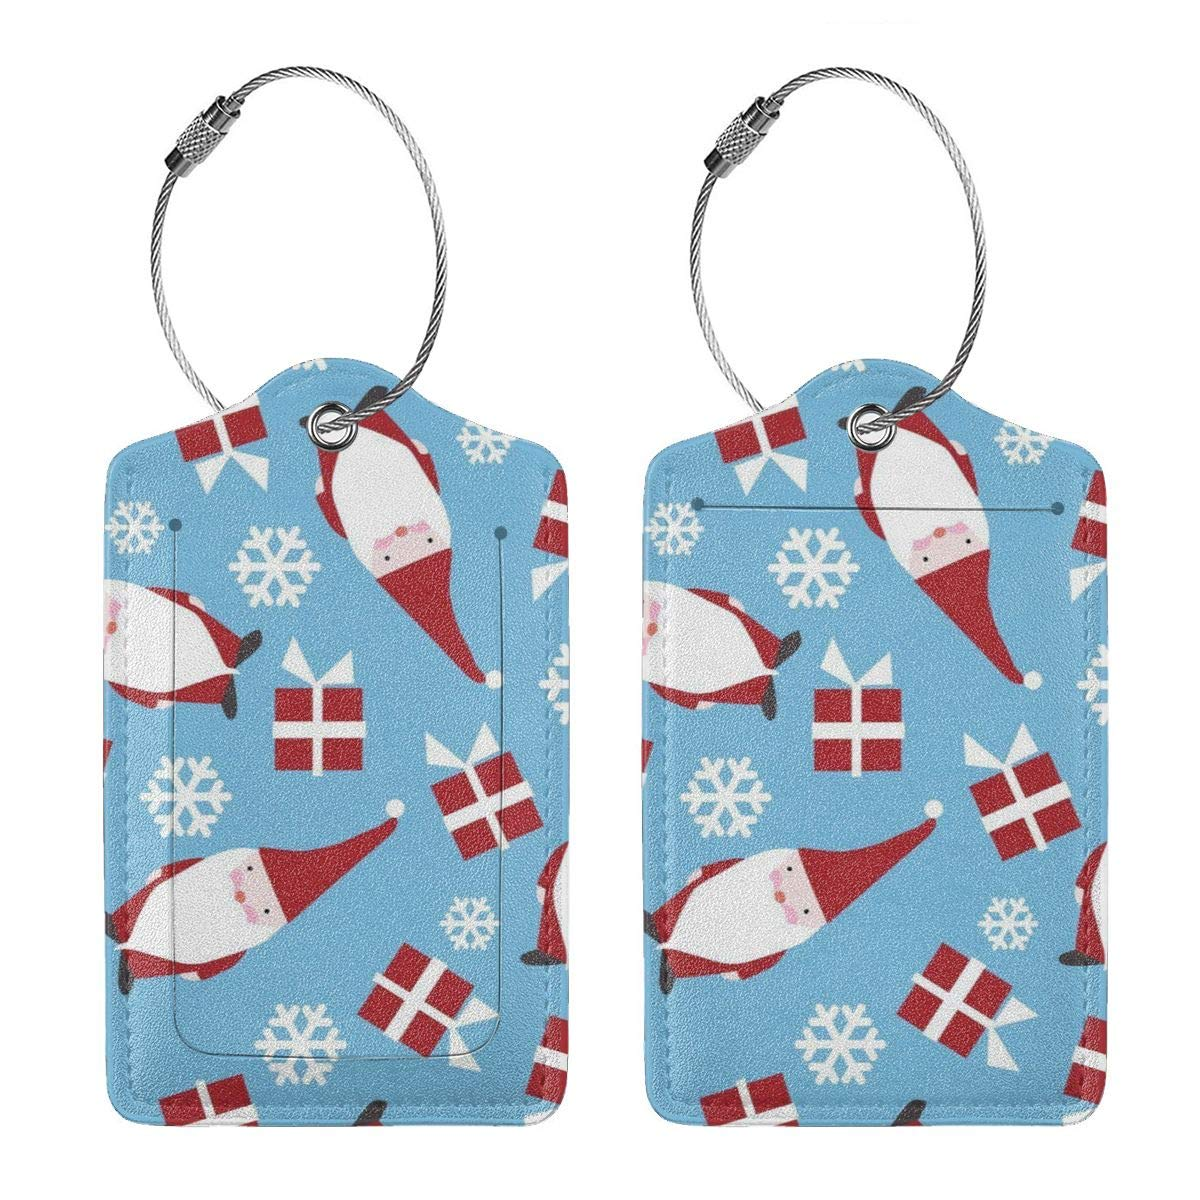 Christmas Holiday Danish Luggage Tag Label Travel Bag Label With Privacy Cover Luggage Tag Leather Personalized Suitcase Tag Travel Accessories